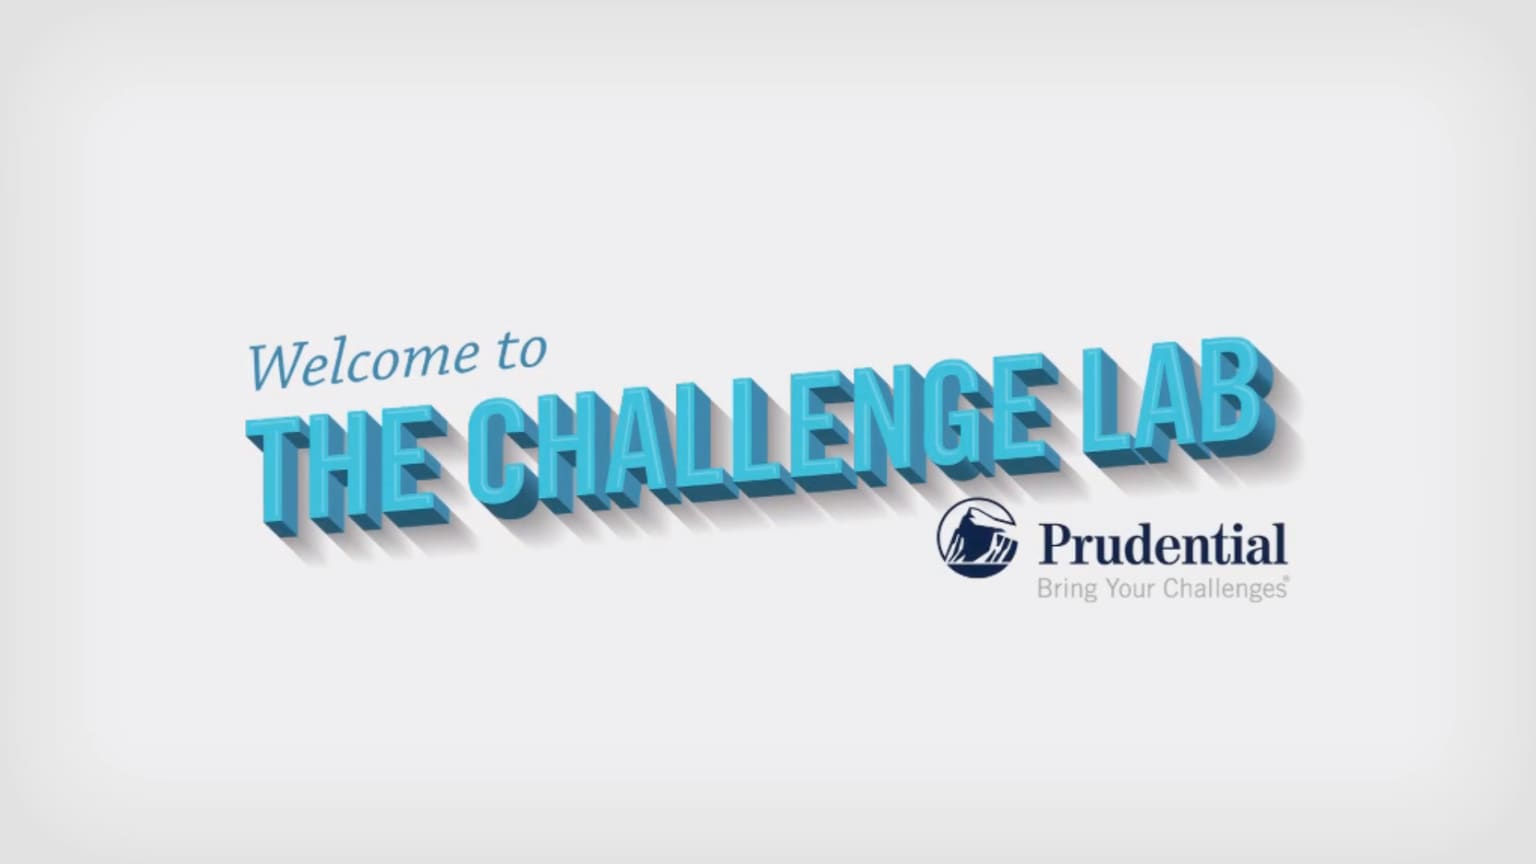 Prudential - The Challenge Lab